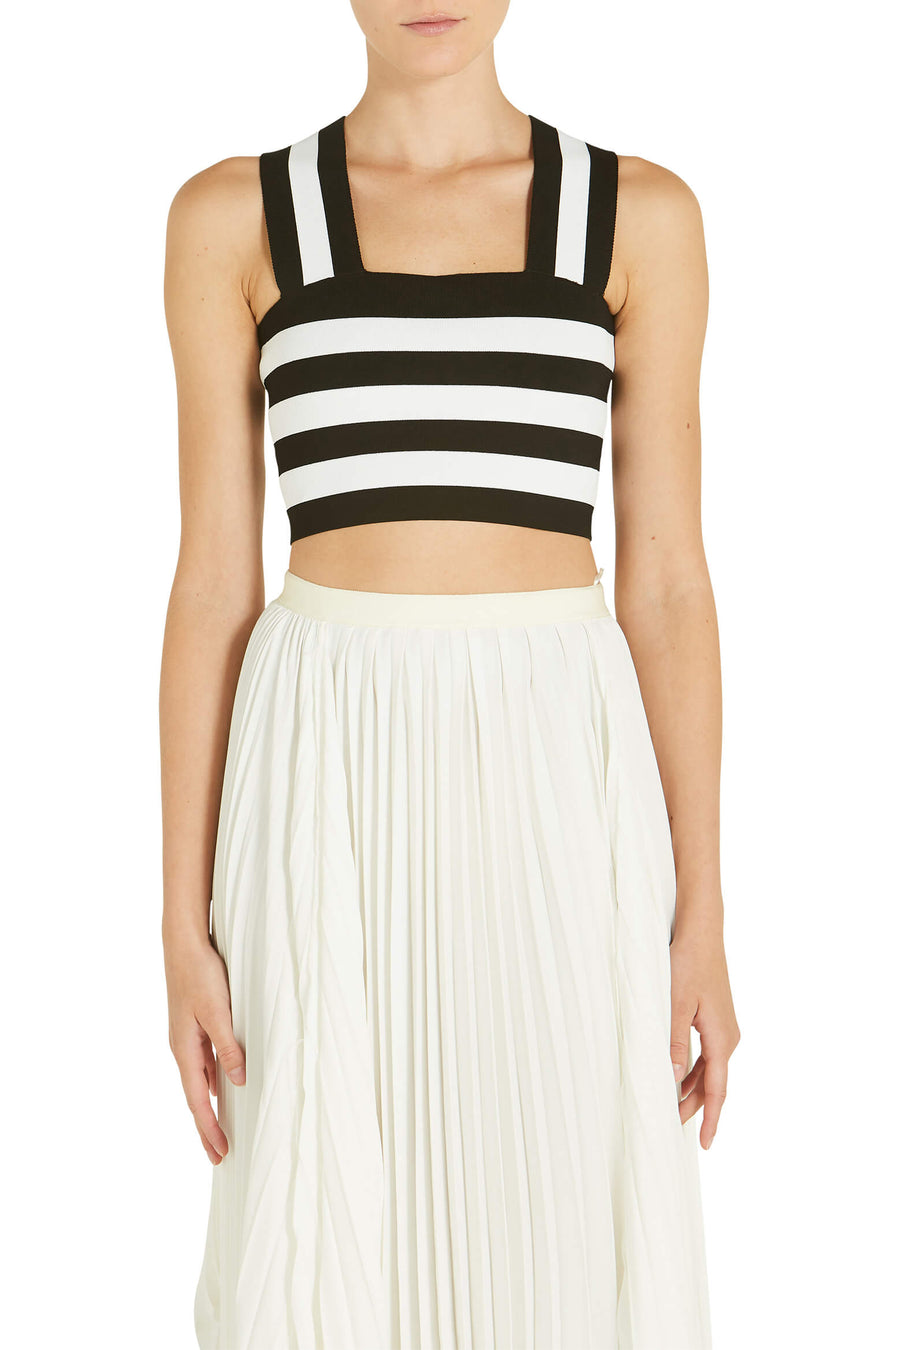 ALC Tia Top Black and White Stripe from The New Trend